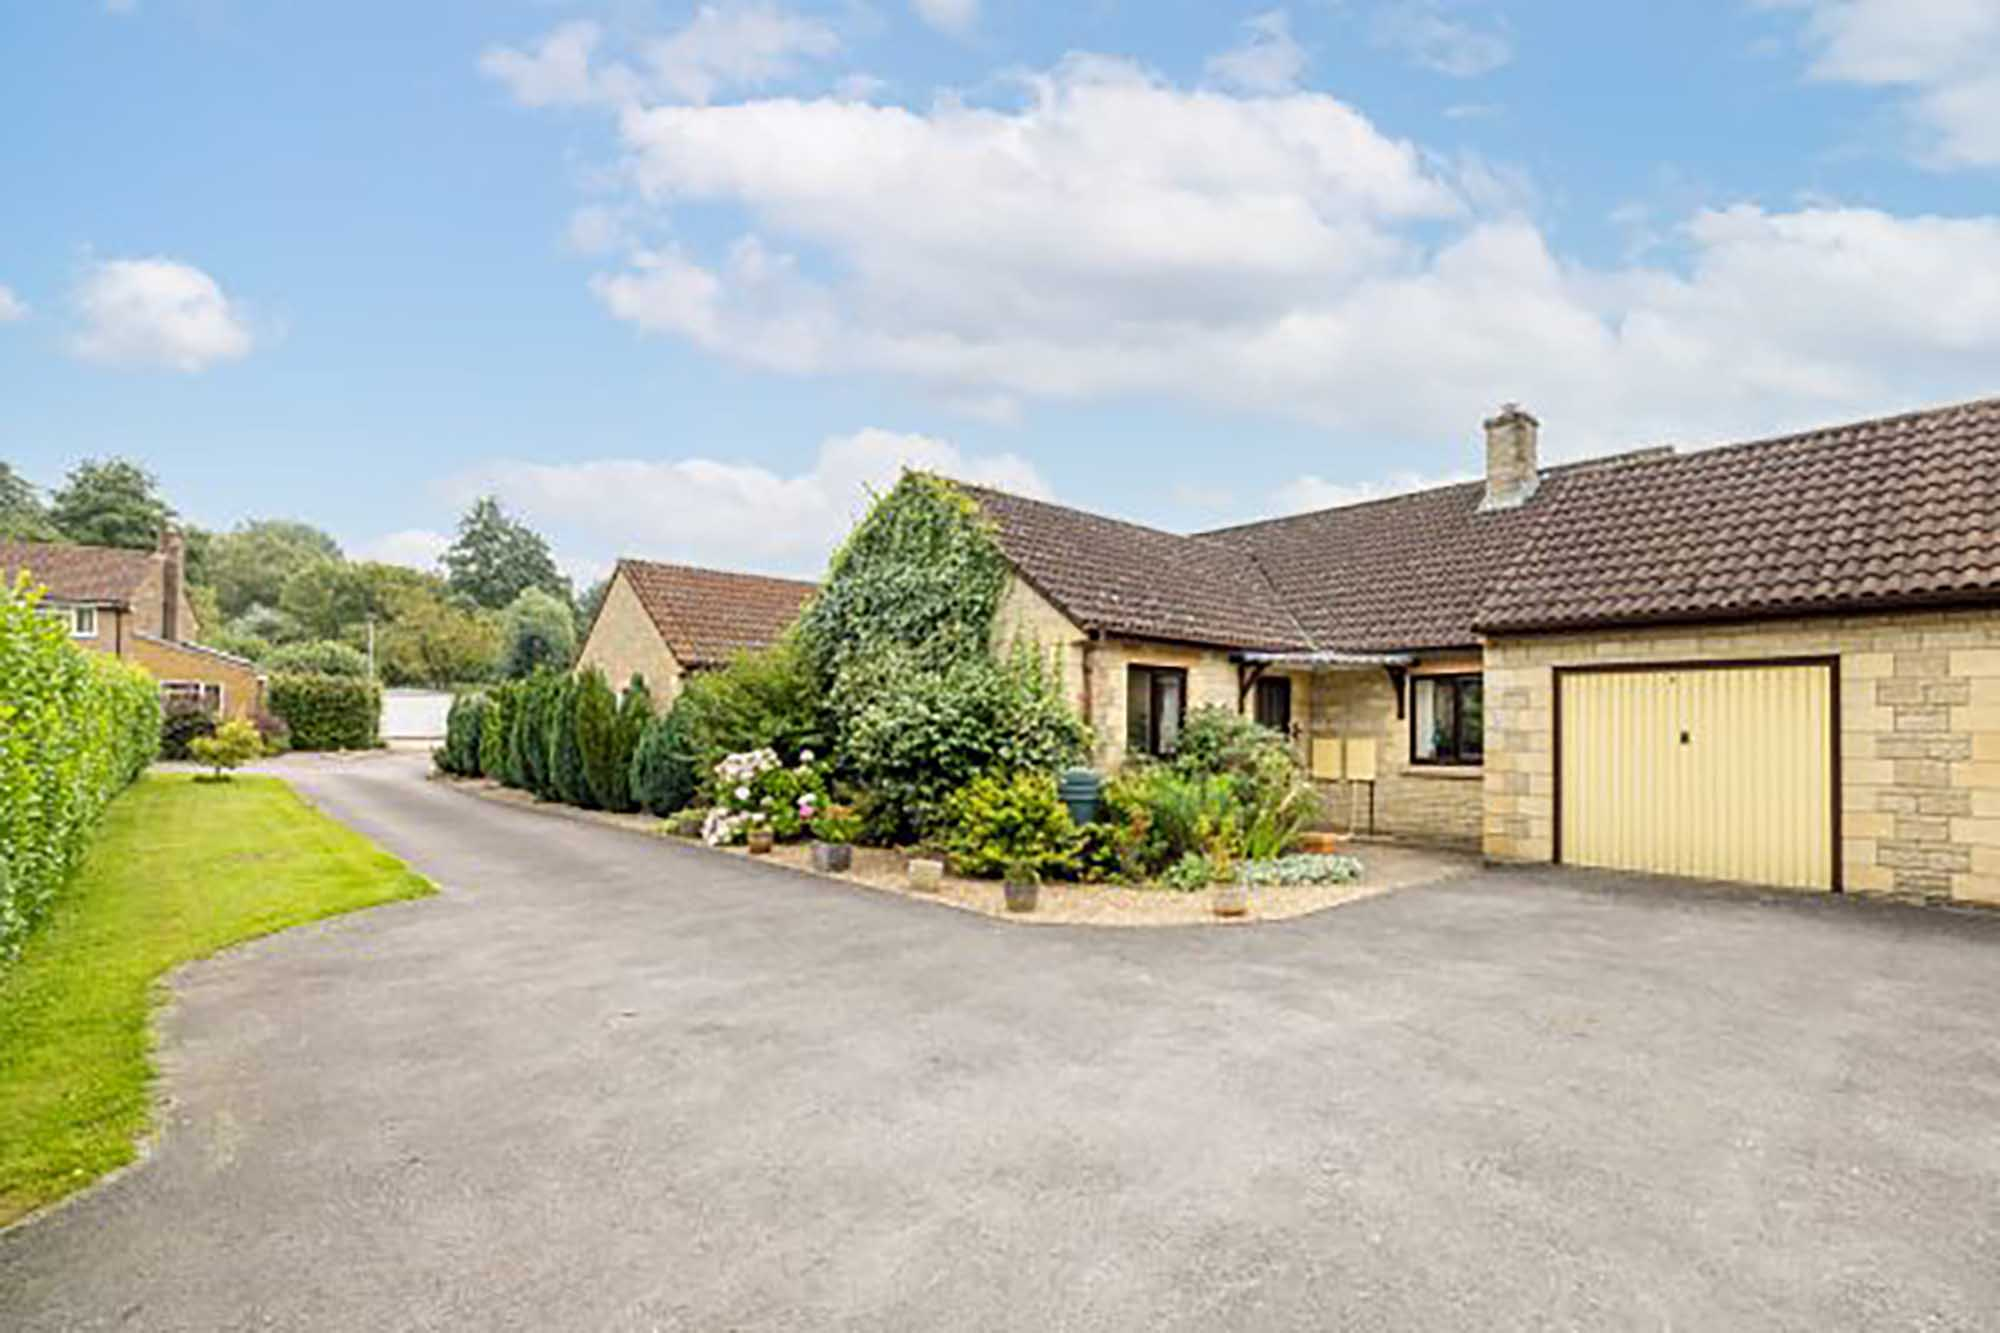 Detached bungalow with views in central Castle Cary